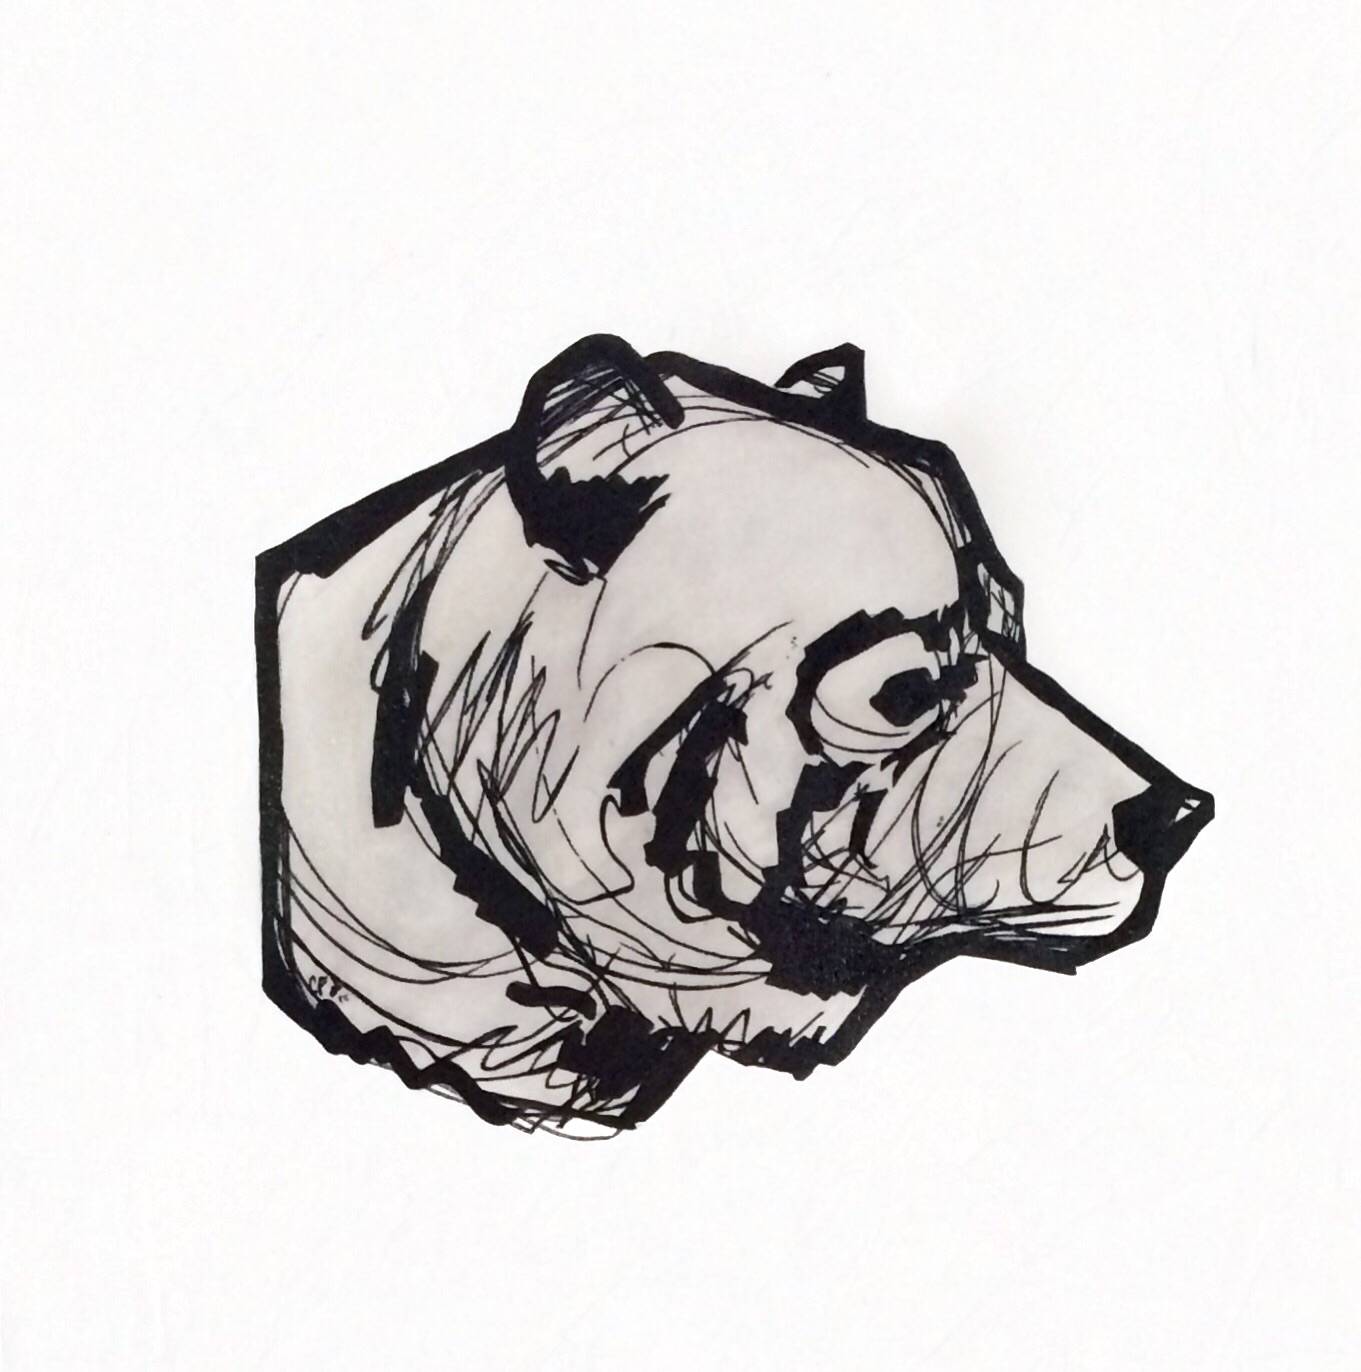 Tête D'Ours - Croquis II